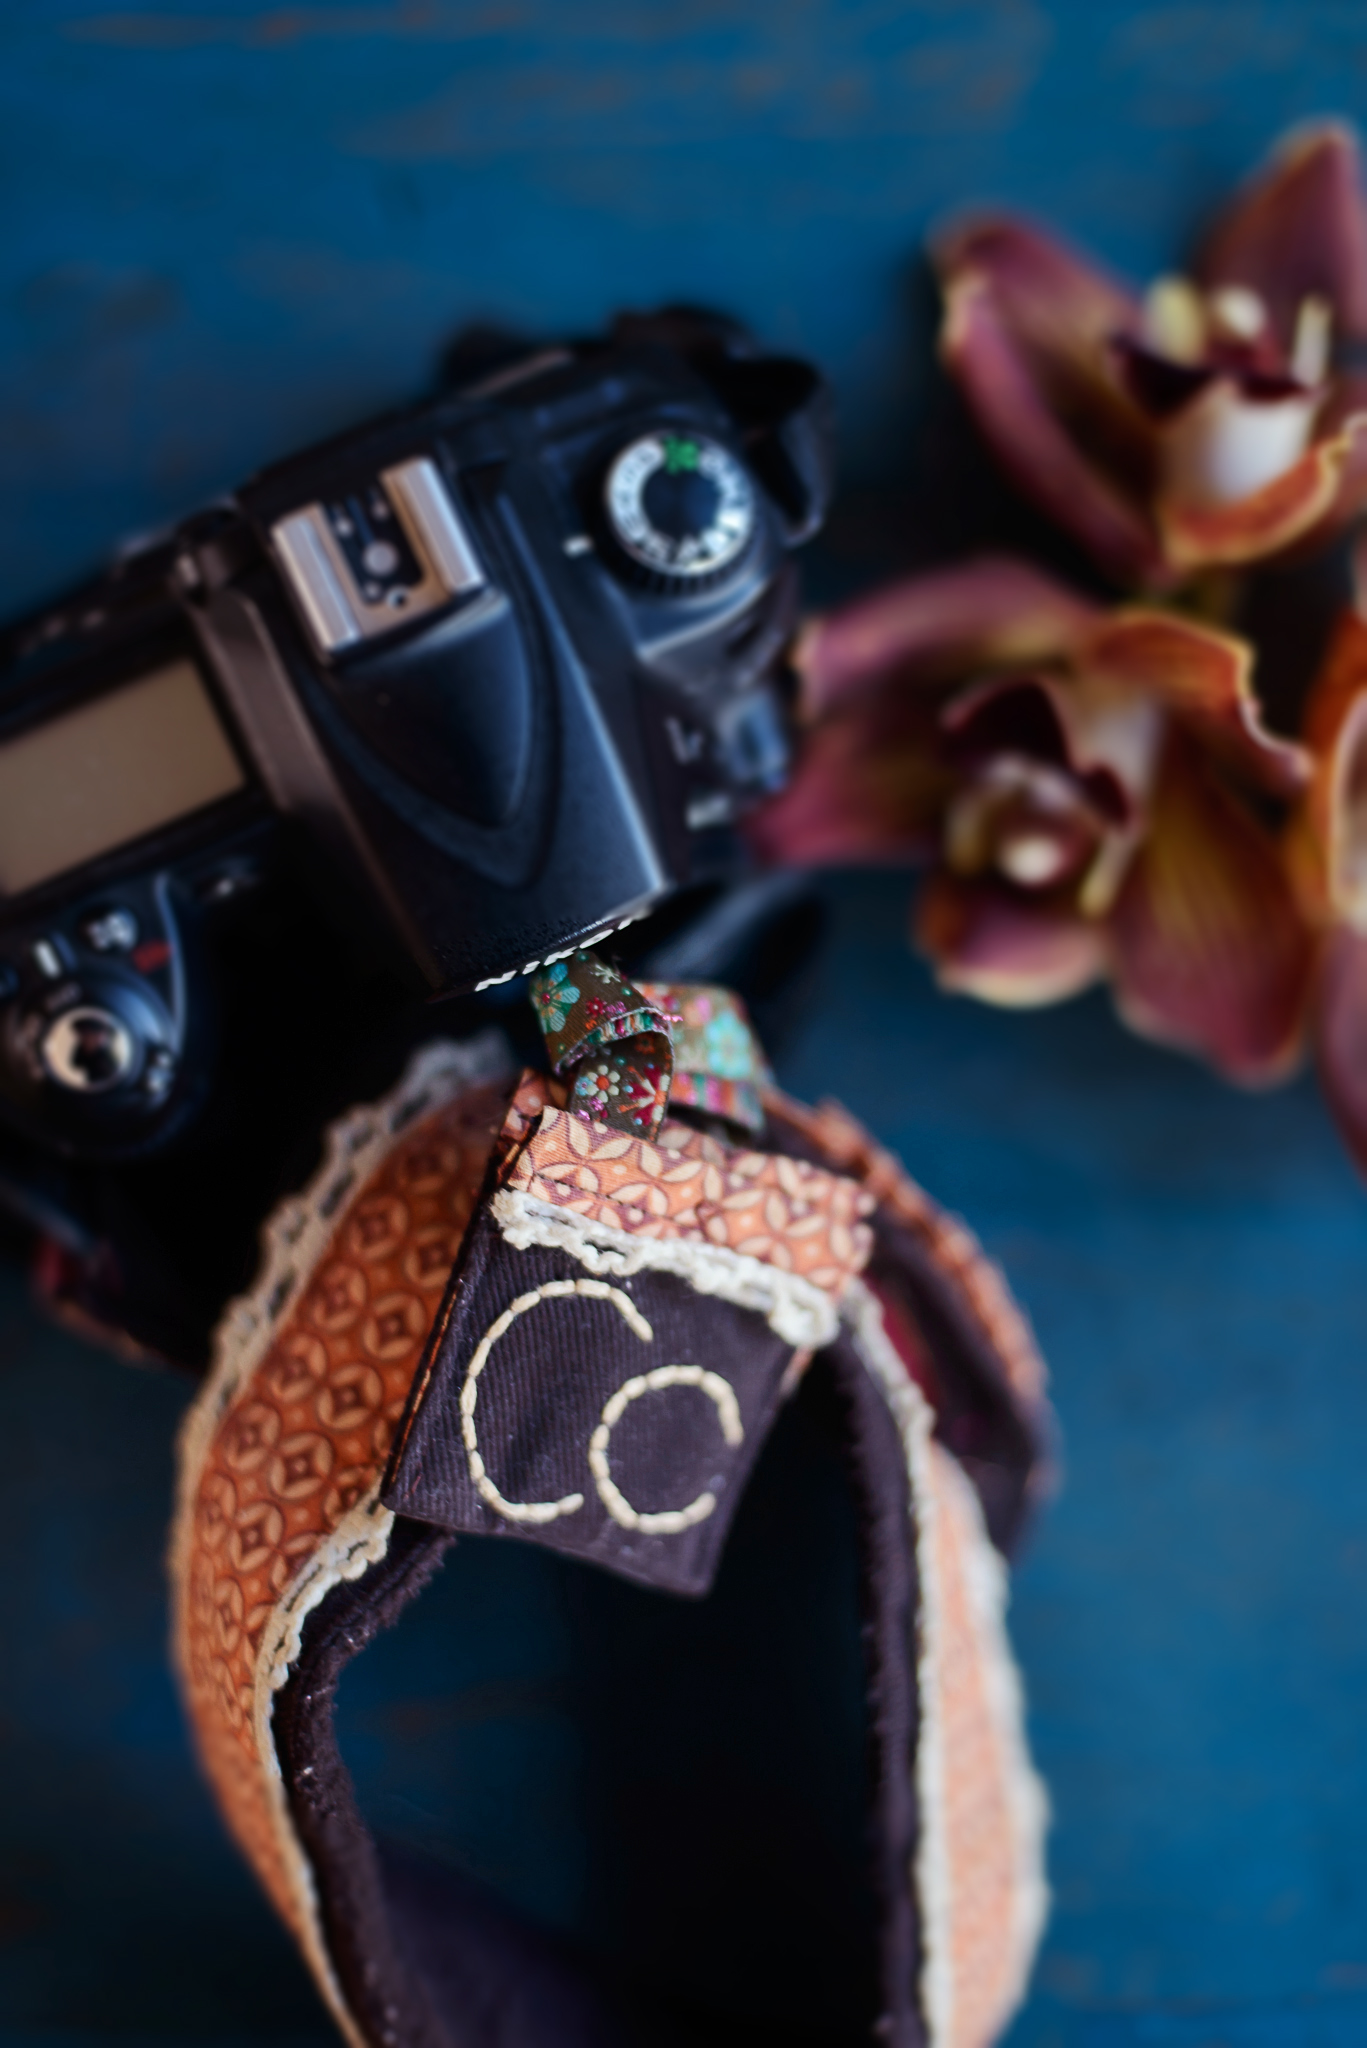 lifestyle-photographer-hills-district-camera-and-flowers-flatlay